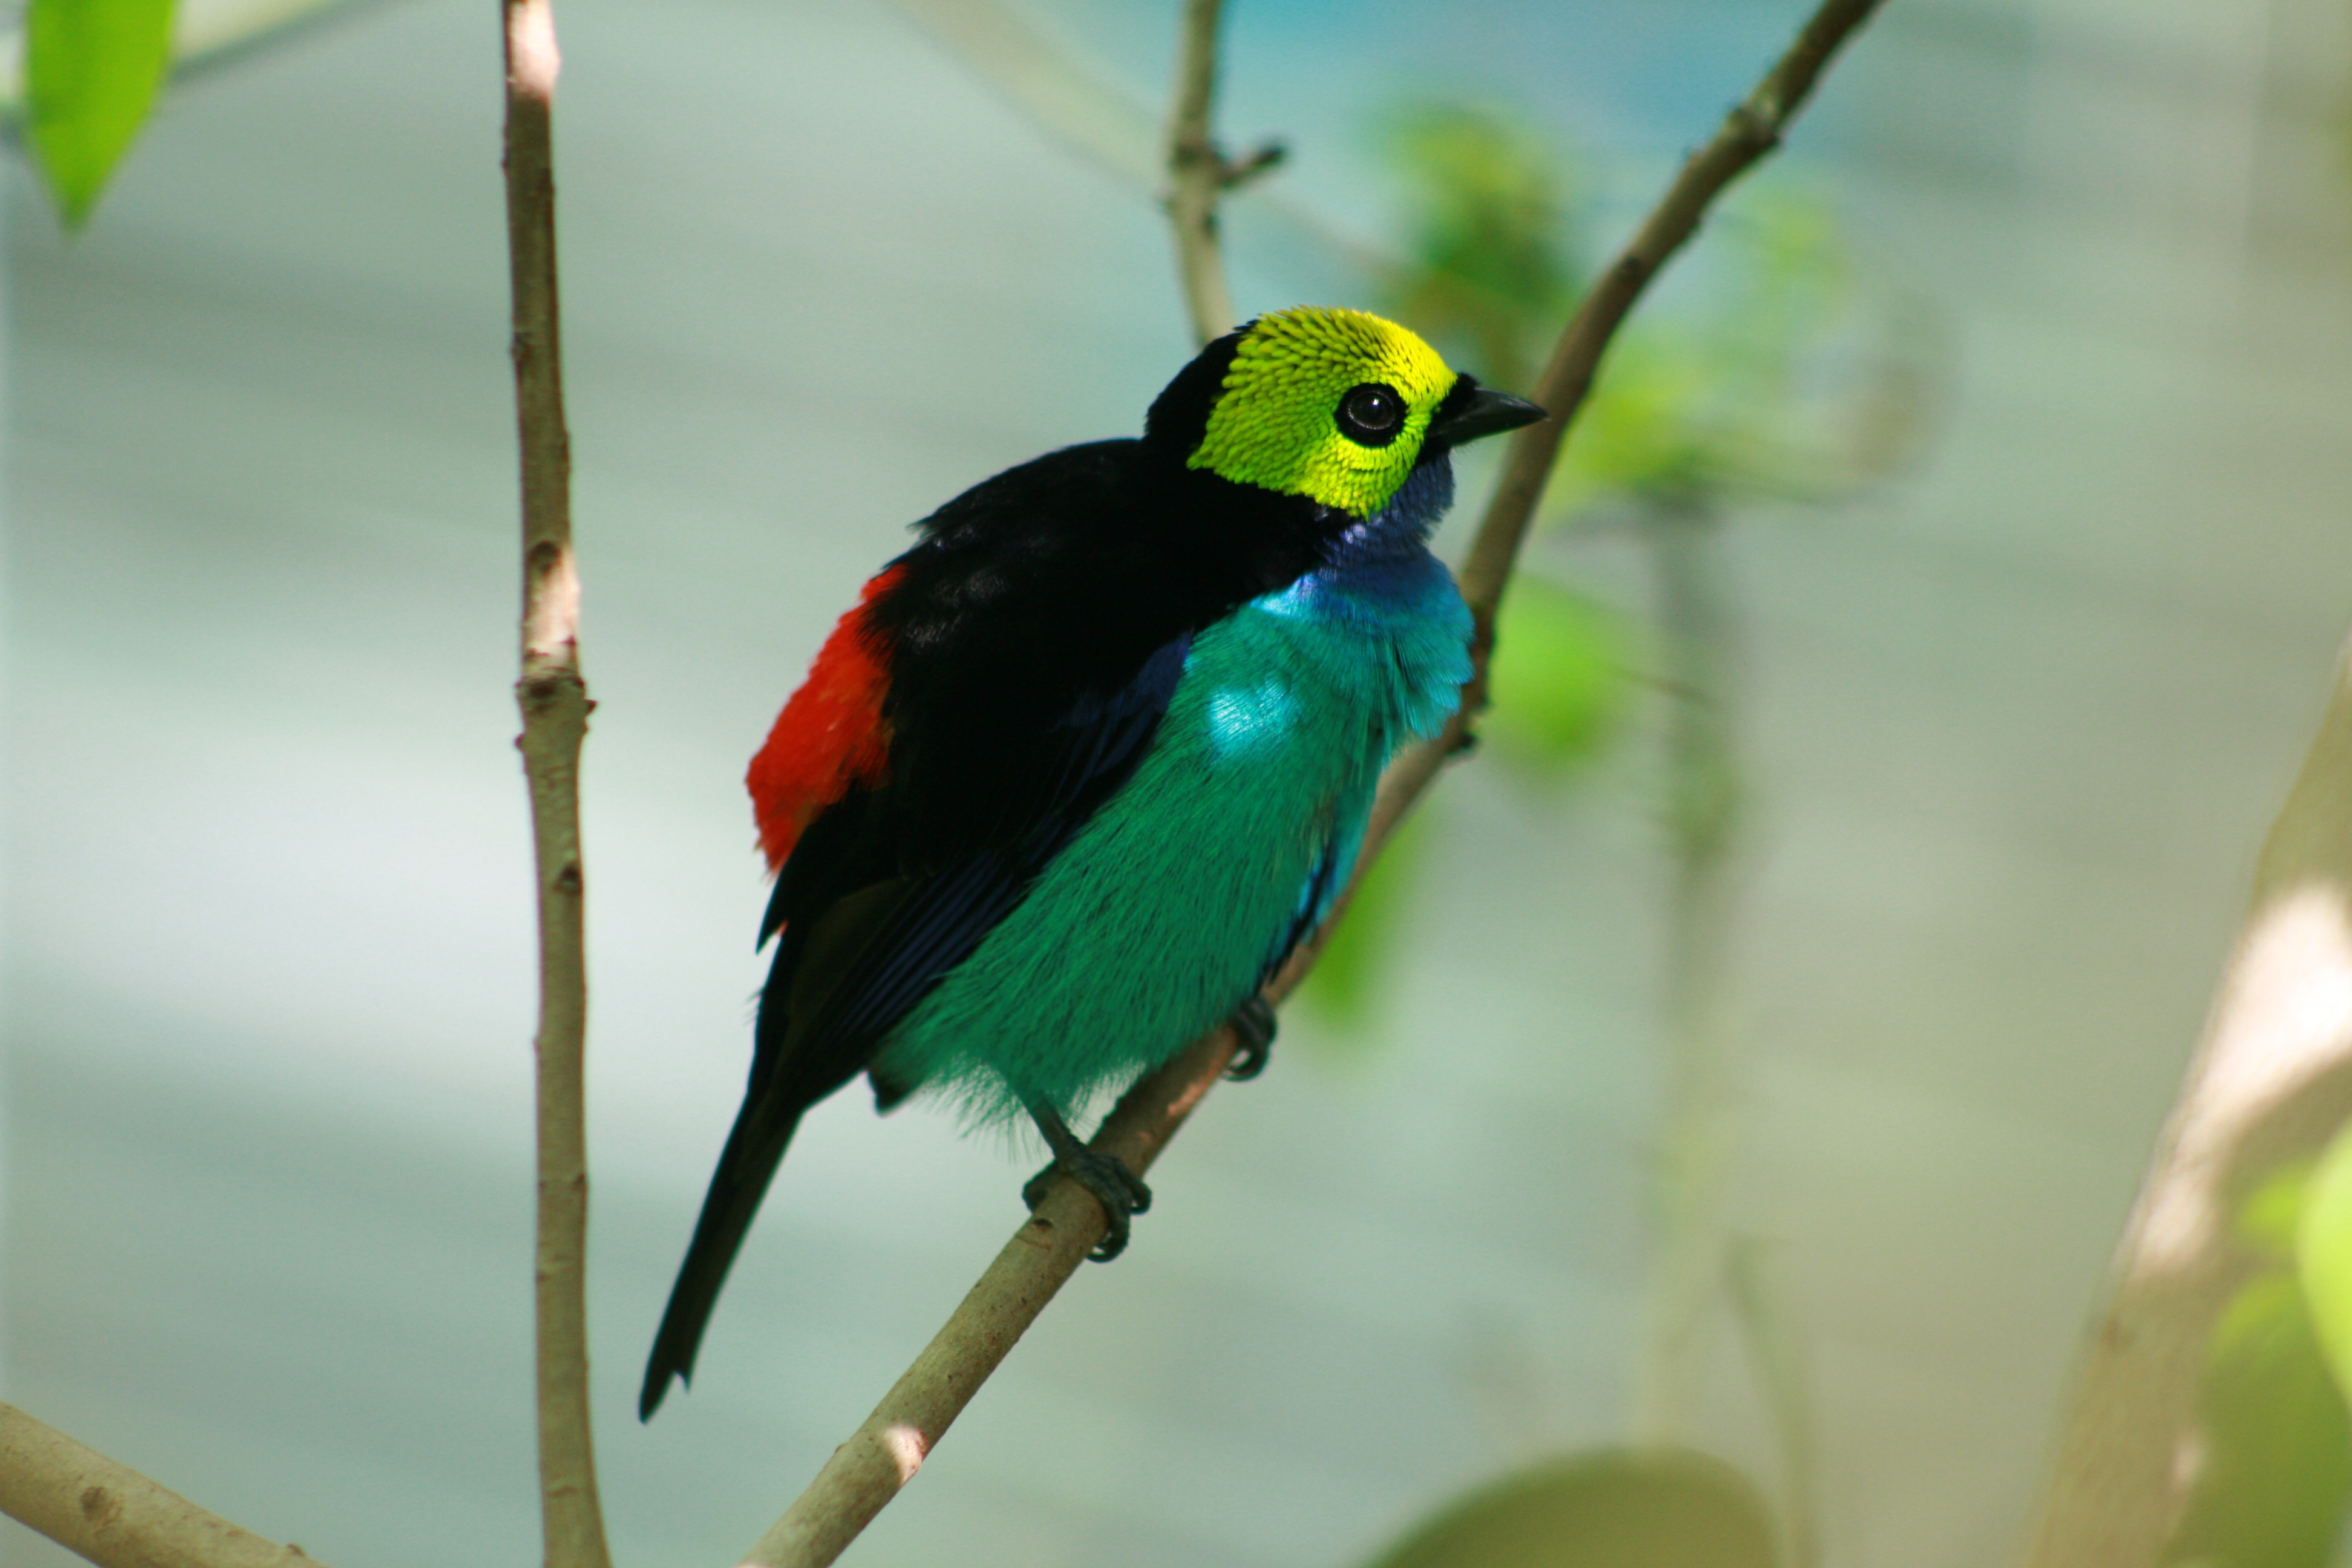 Beskrivning paradise tanager at california academy of sciences jpg